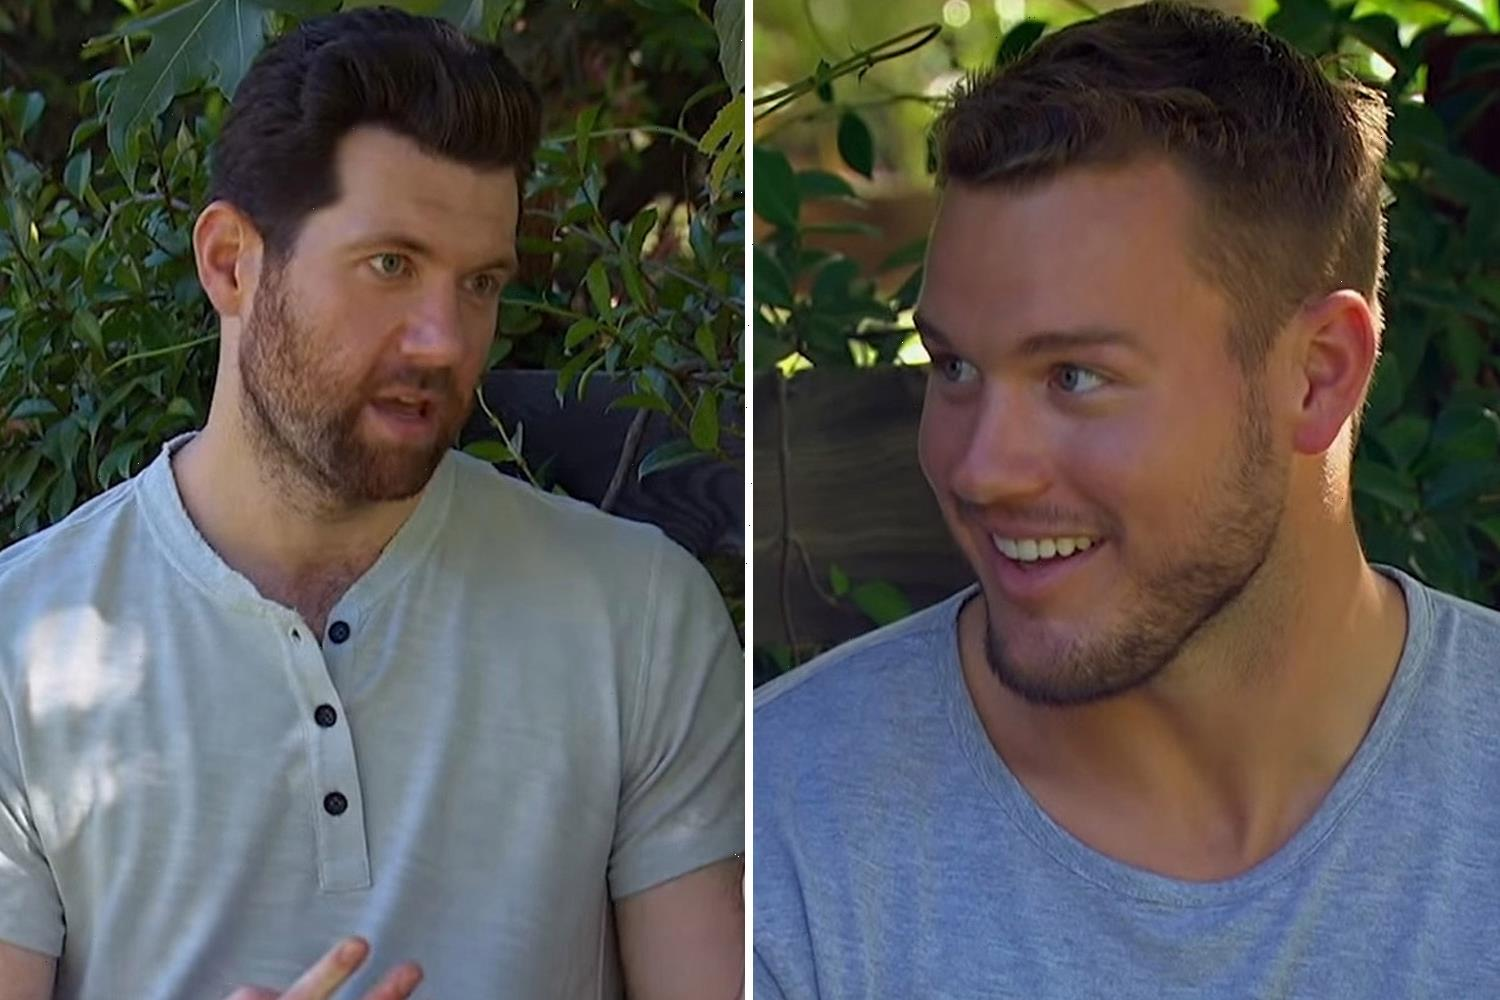 Colton Underwood looked shocked as comic Billy Eichner told him to be 'the first gay Bachelor' years before he came out